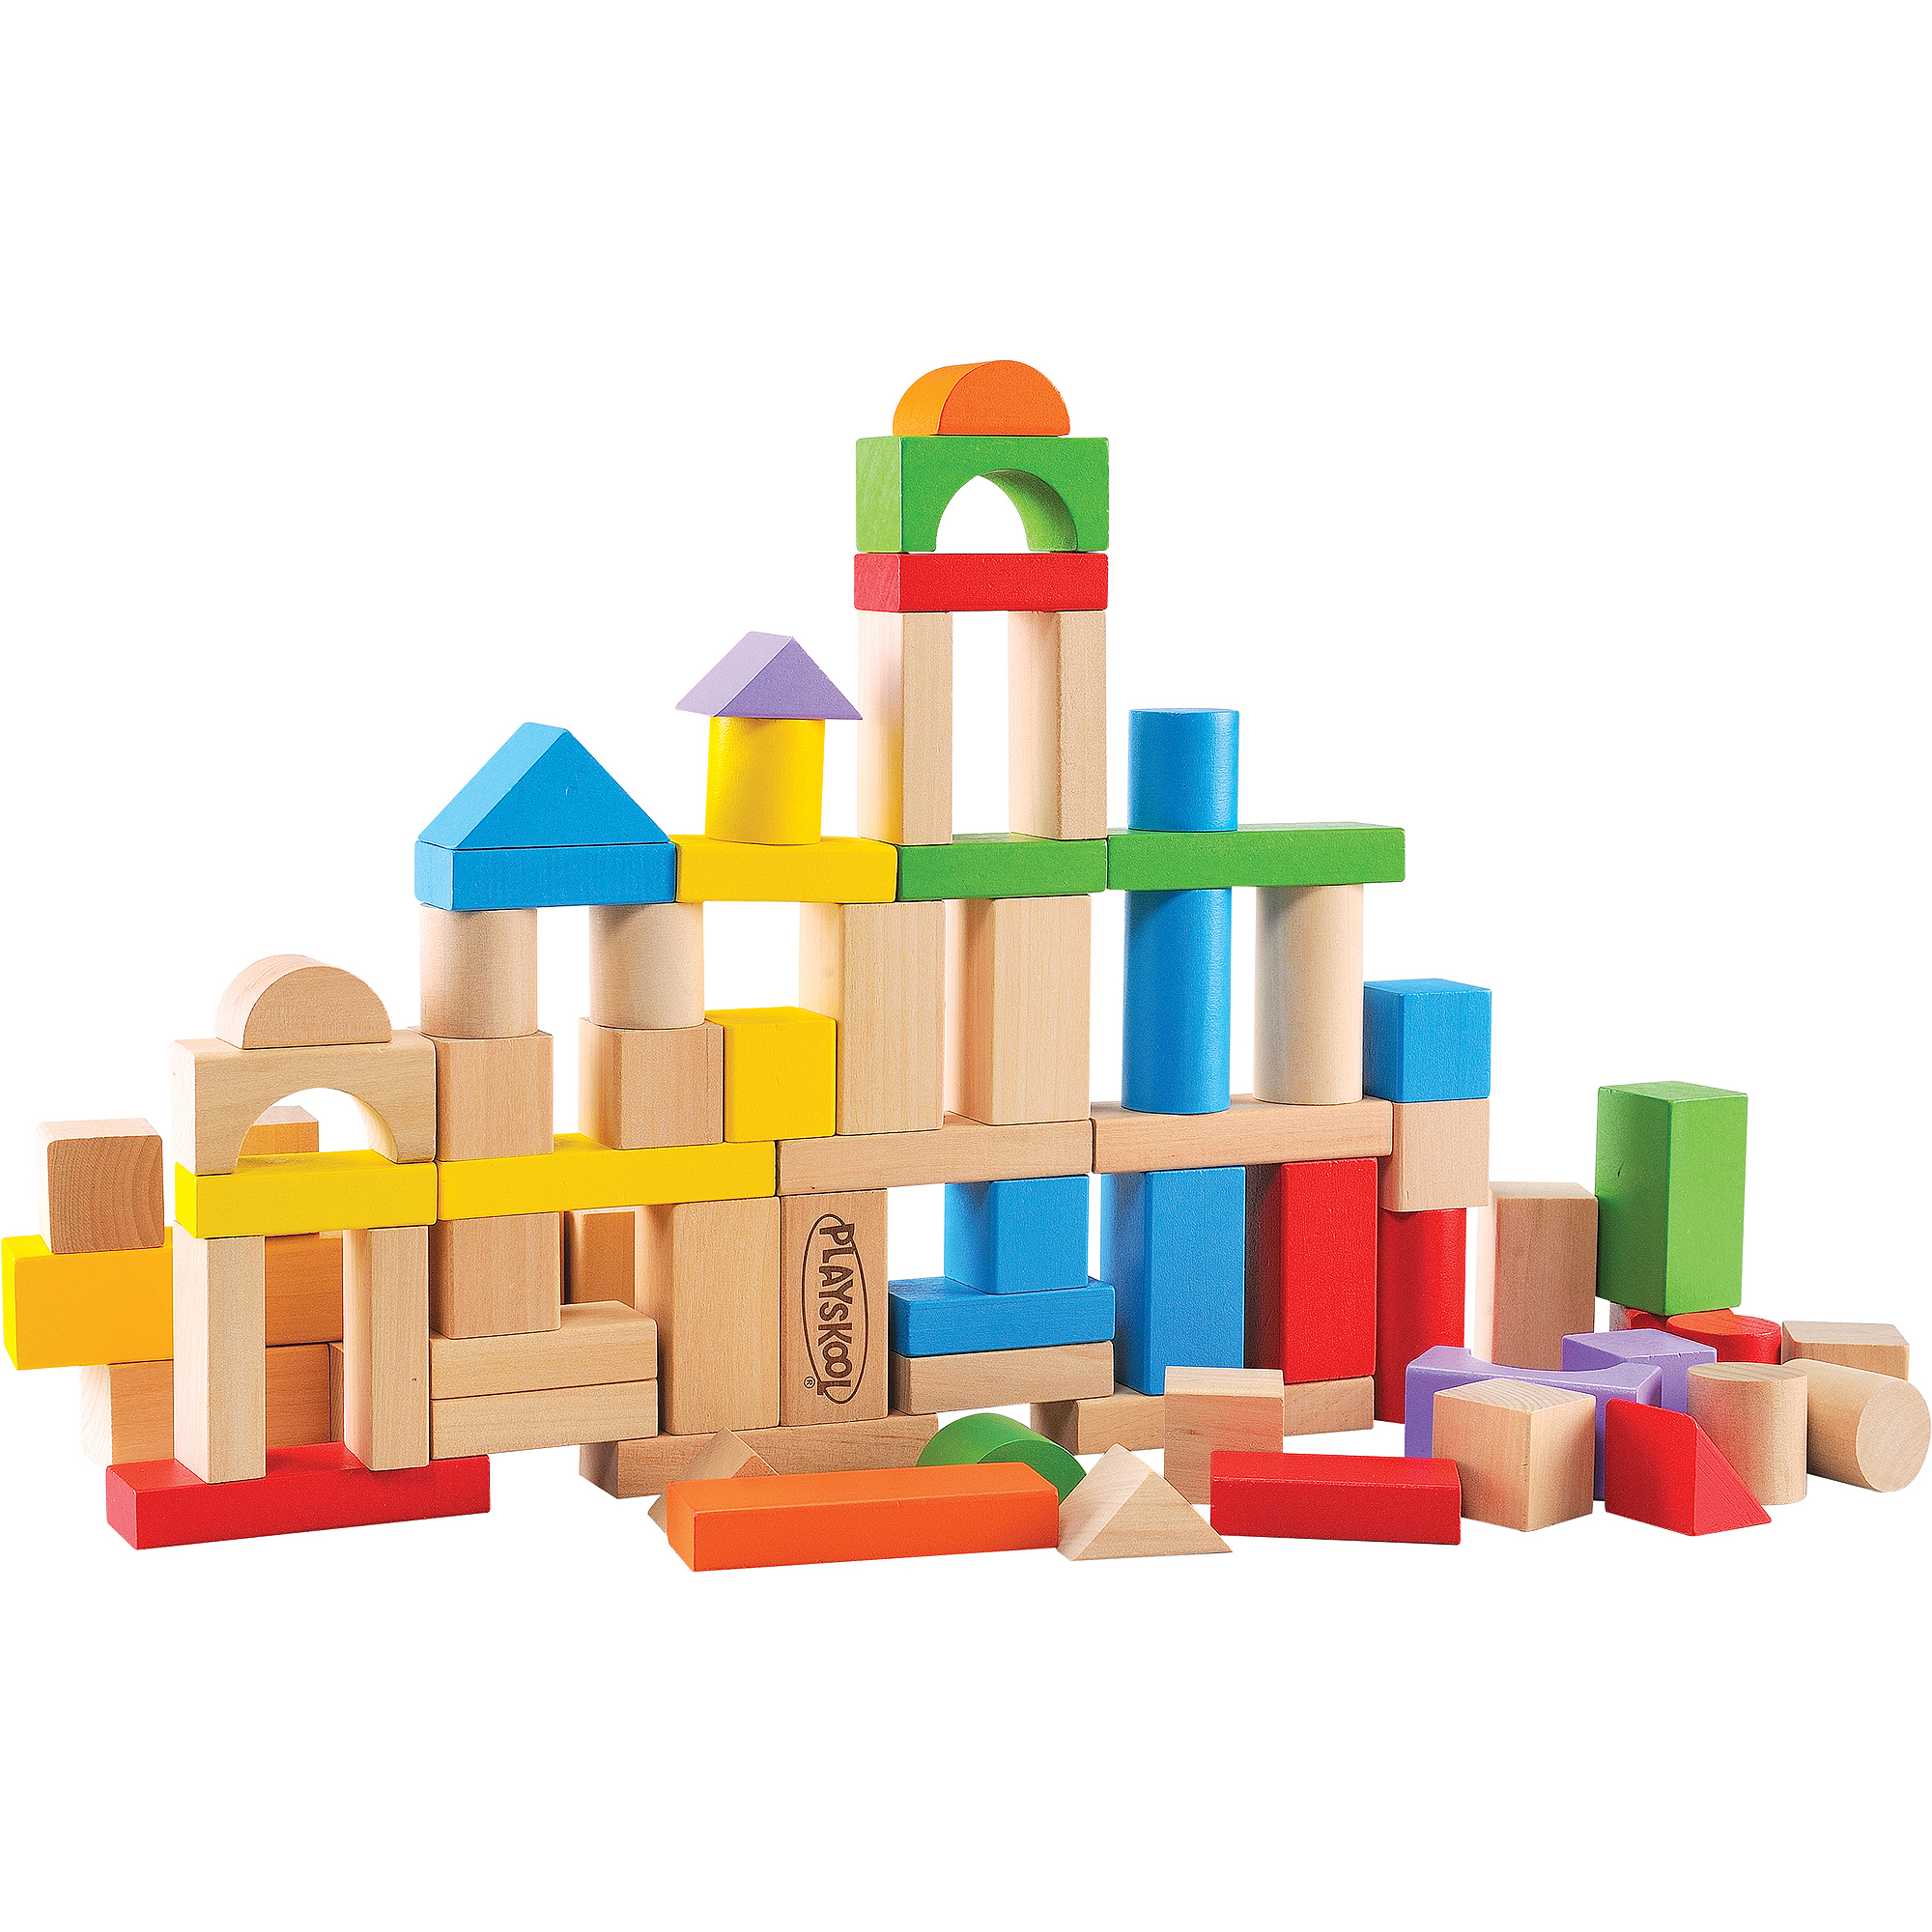 Playskool 80-Piece Wooden Building Blocks